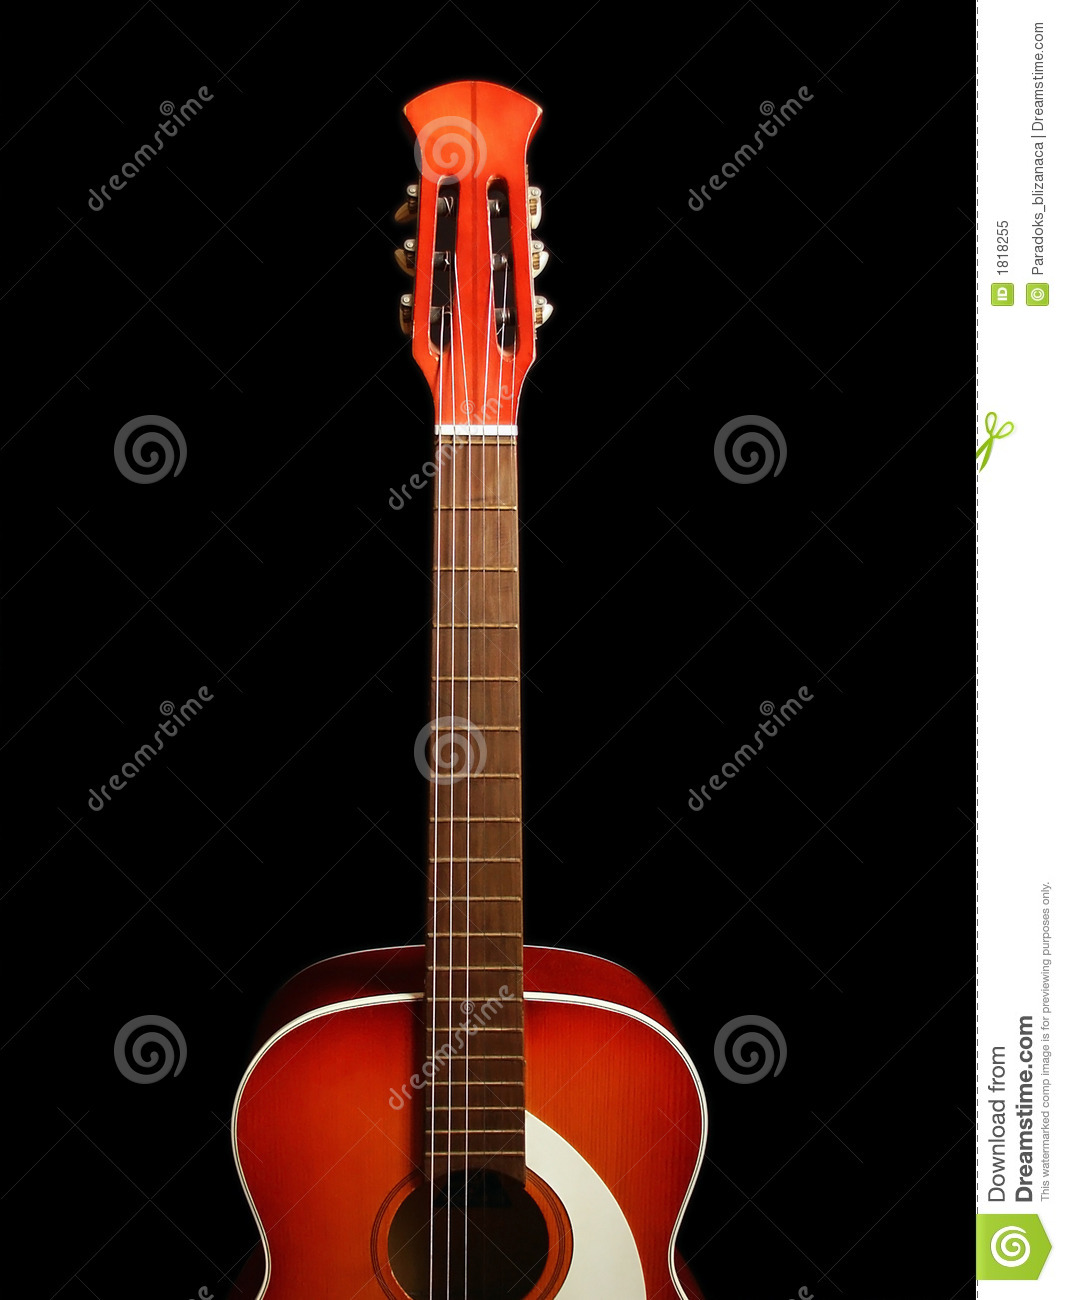 Acoustic Guitar On Black Background 5 Stock Image Image Of Guitar